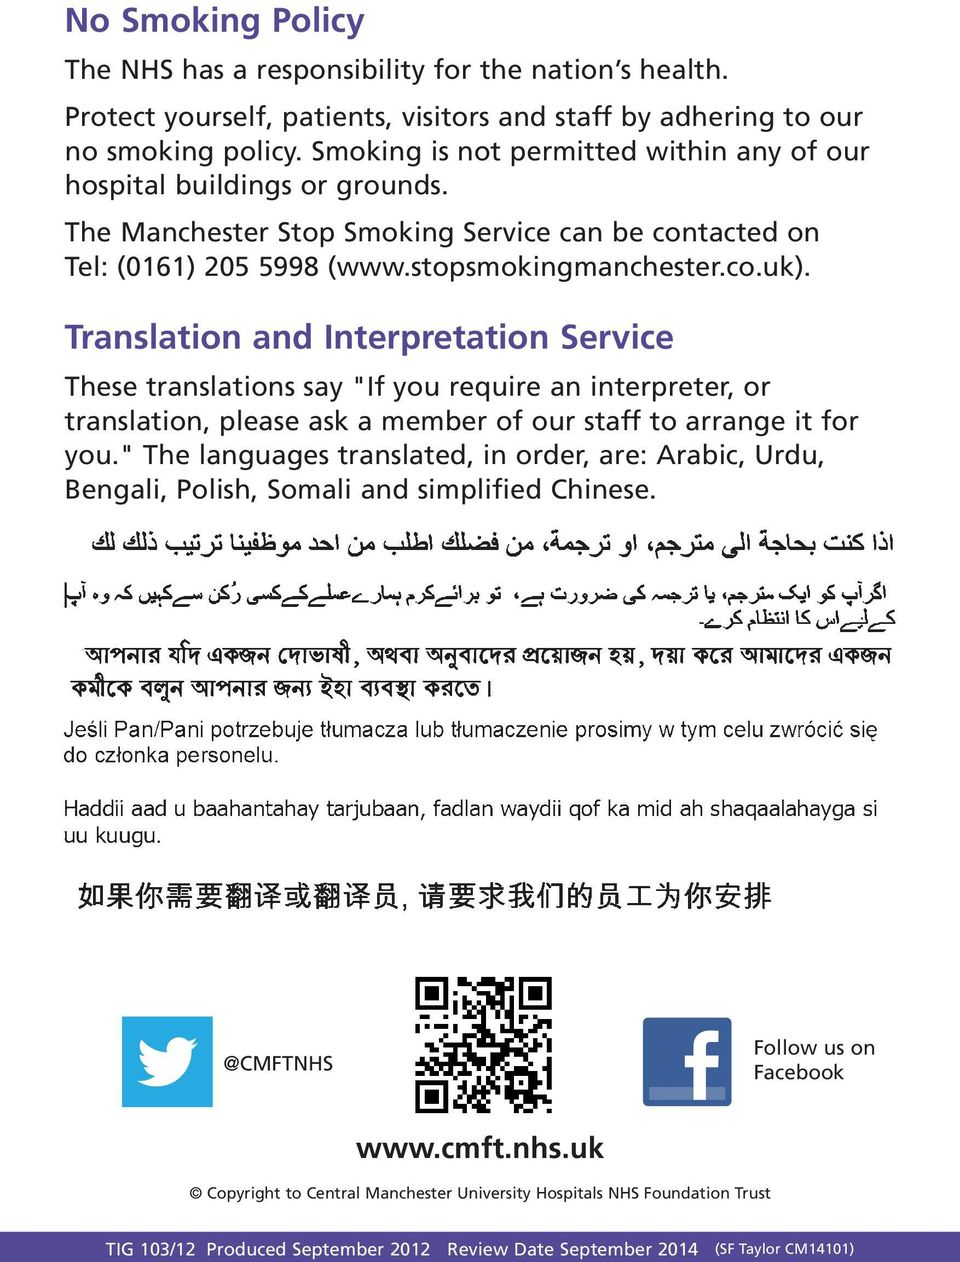 "Translation and Interpretation Service These translations say ""If you require an interpreter, or translation, please ask a member of our staff to arrange it for you."